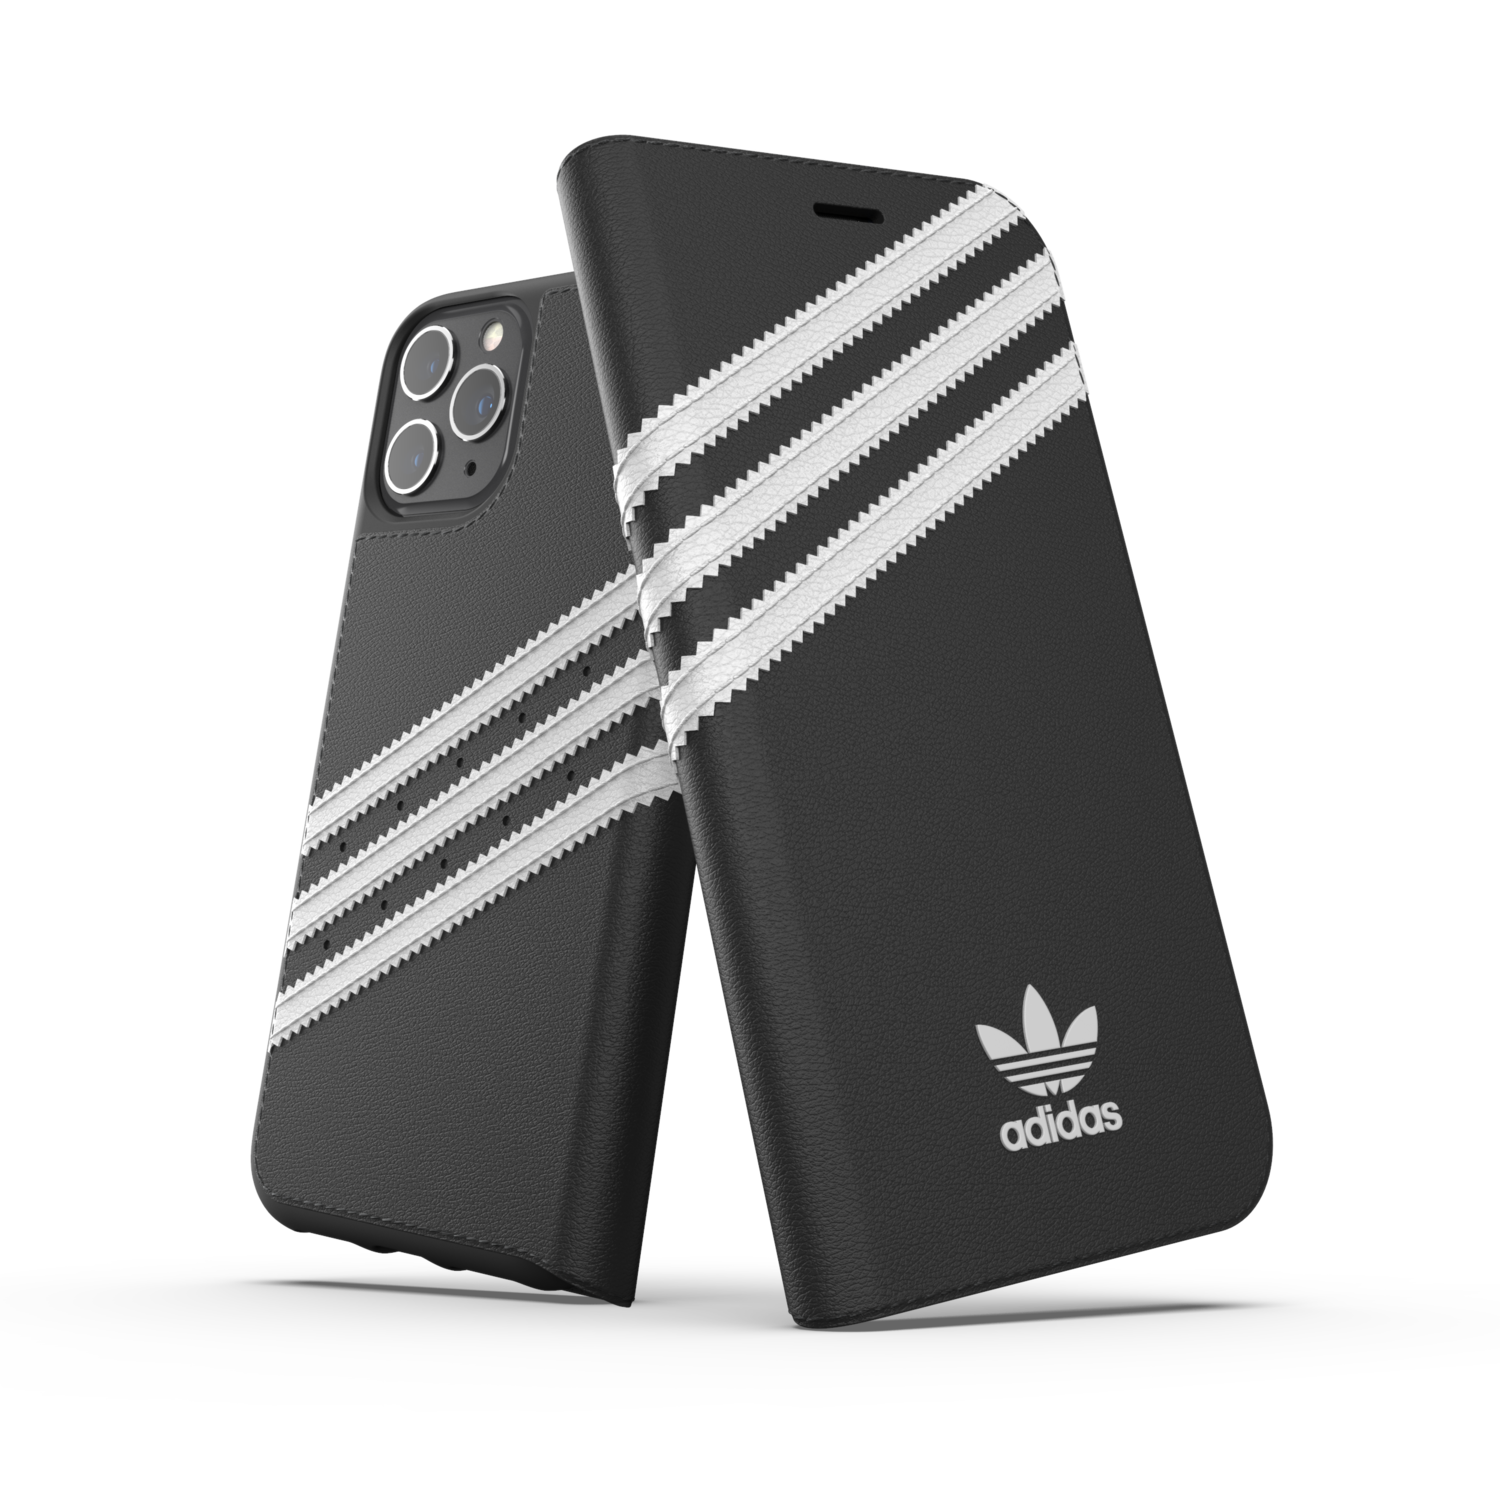 adidas OR Booklet Case PU FW19/SS21 for iPhone 11 Pro black/white